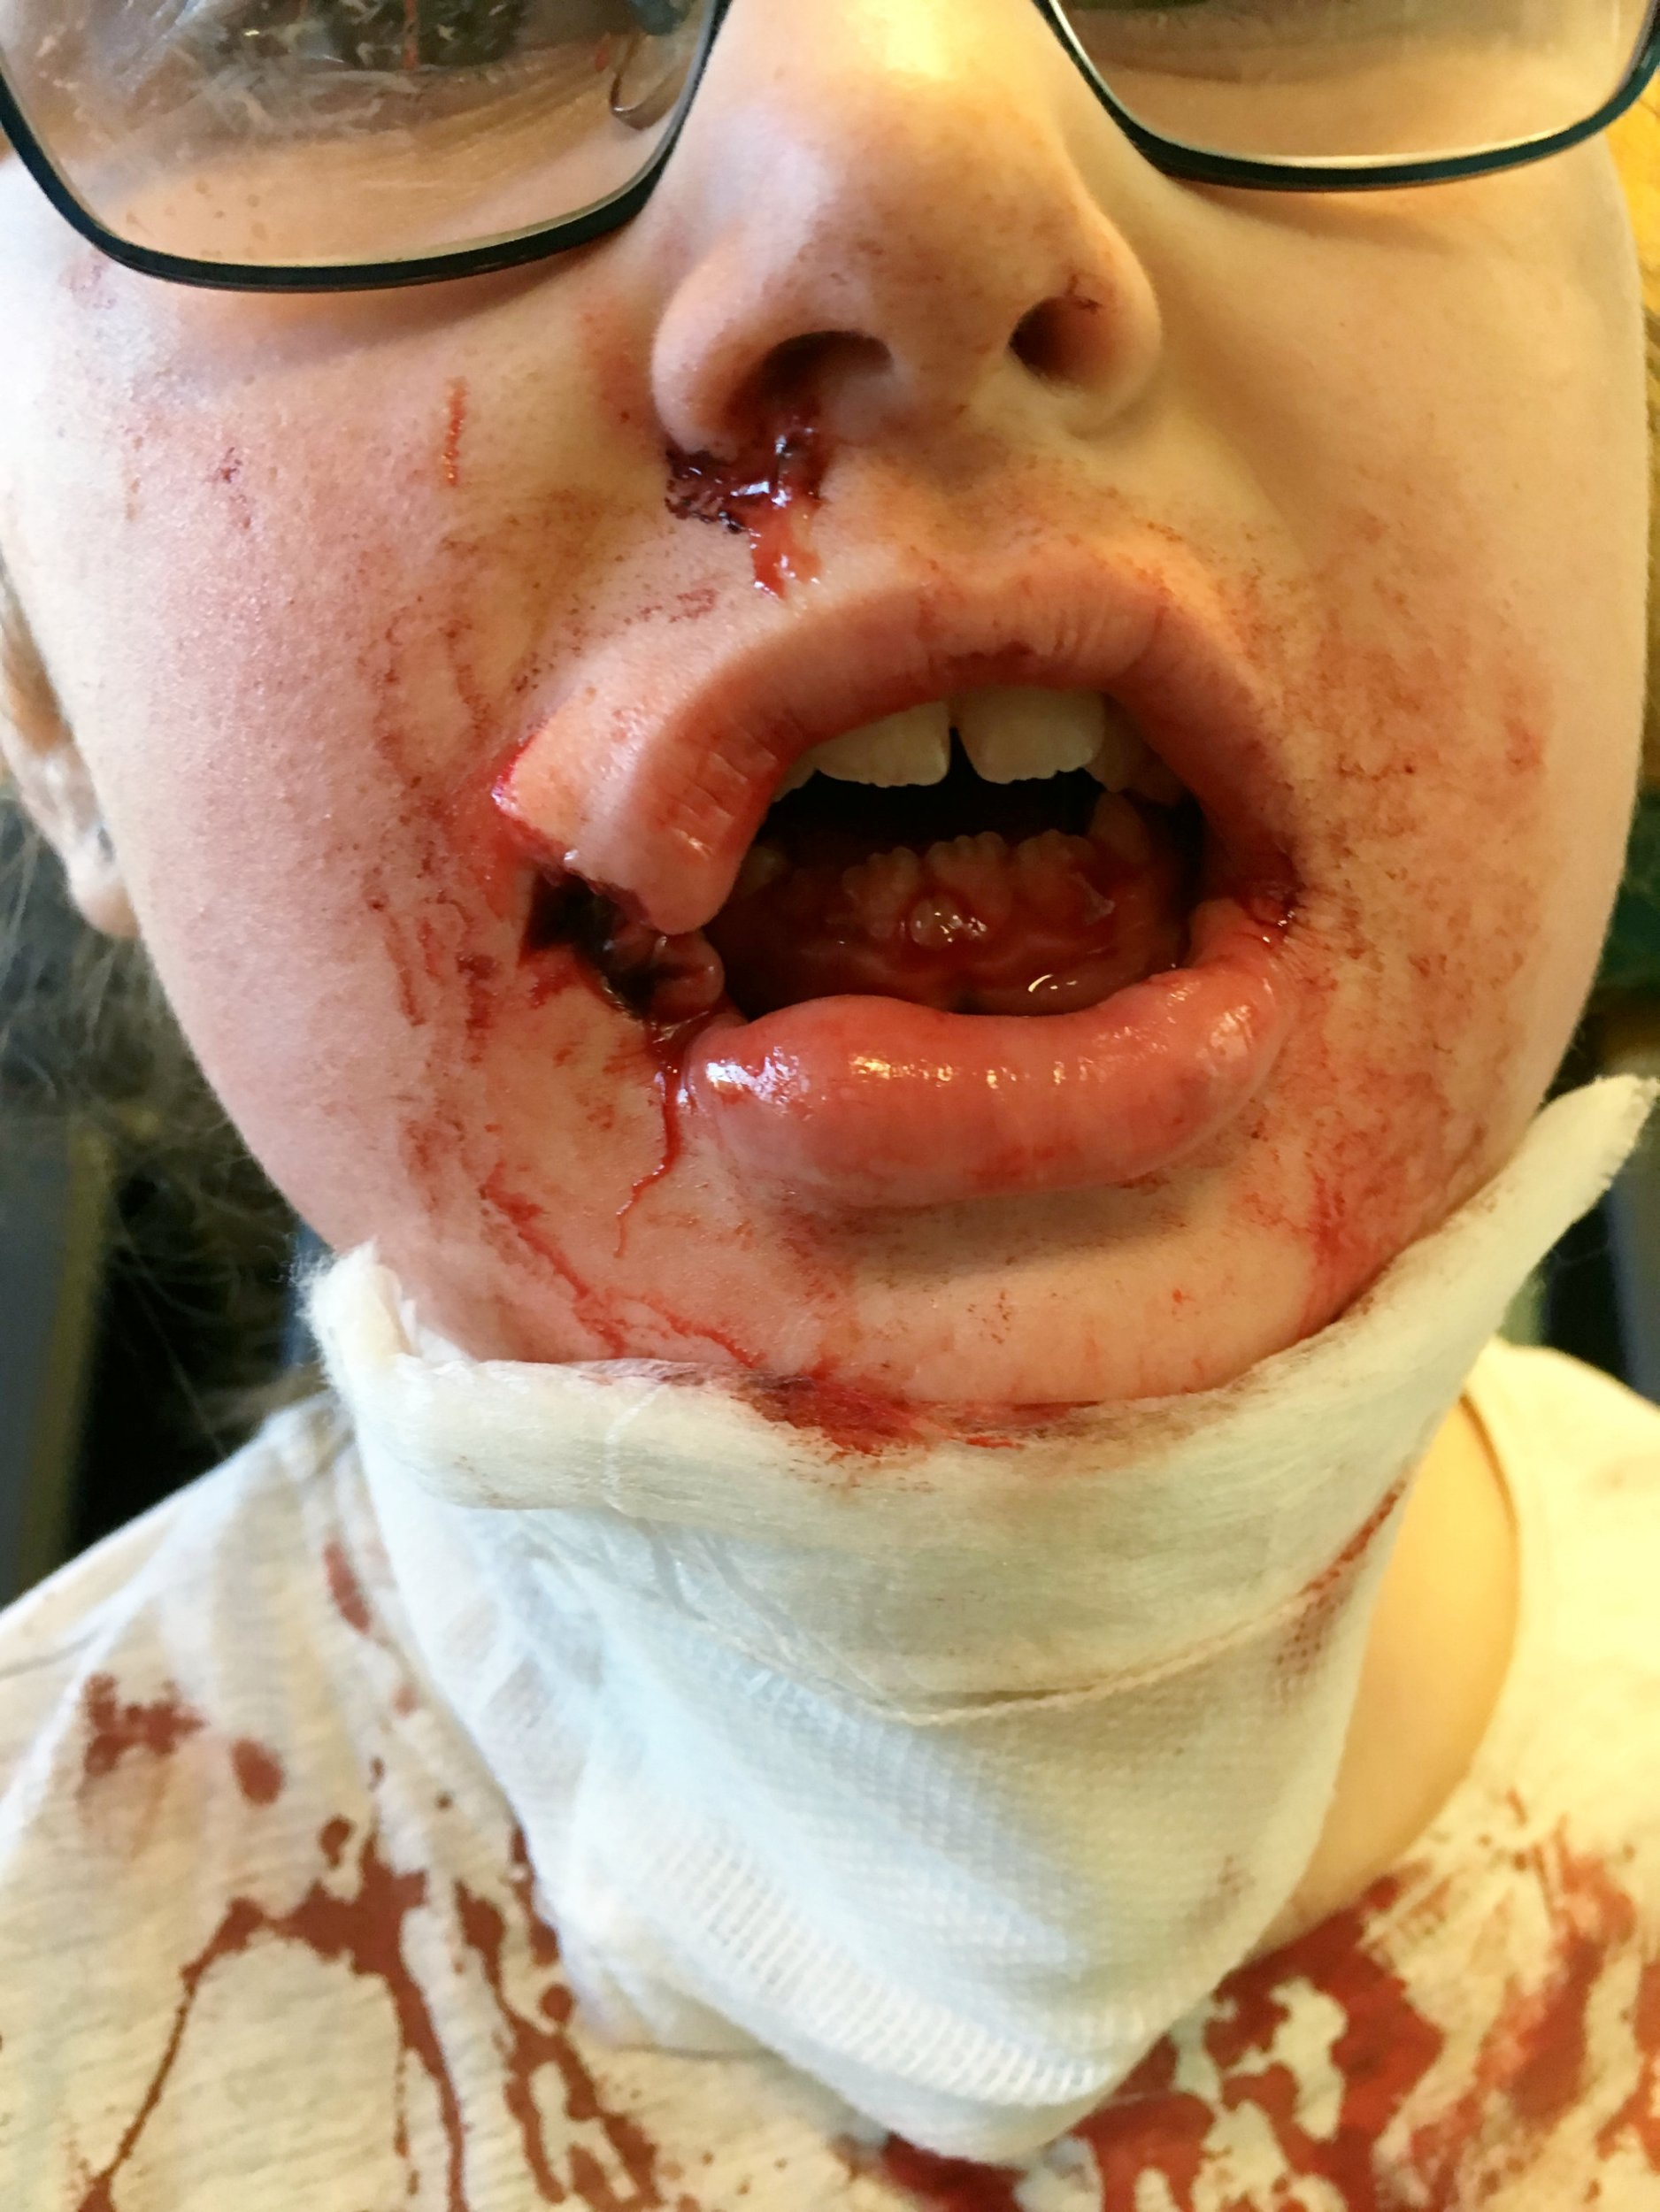 """Kiera Woodhouse,7 of Nottingham, the day of the dog attack 2018. An autistic schoolgirl has been left """"mentally scarred"""" after she was left with horrific facial injuries from a vicious dog attack. See SWNS story SWMDmaul. Kiera Young, 7, had her lip ripped off after stoking a white and black Akita outside the Witham Tavern, Boston, on February 27 just after 2pm. Her grandmother Sharon Young, 57, had taken her to the pub for her sister Debbie Hayes 60th Birthday. The mum-of-two, from Nottingham walked, whilst Kiera was driven down by Debbie. The 57-year-old said she heard her granddaughter screaming across the river and dashed to the scene. She saw Kiera bleeding from her mouth and rushed her to Pilgrim Hospital, Boston, where her wounds were cleaned. The youngster, spent nearly three hours in surgery at Lincolnshire Hospital the next day to repair her facial injuries. Kiera was diagnosed with autism at the age of three and struggles to eat and keeps her distance when ever she see a dog in the street since the attack. Sharon, who been Kiera's carer since she was 11 months old, said she has still not received an apology from the dog's owners."""